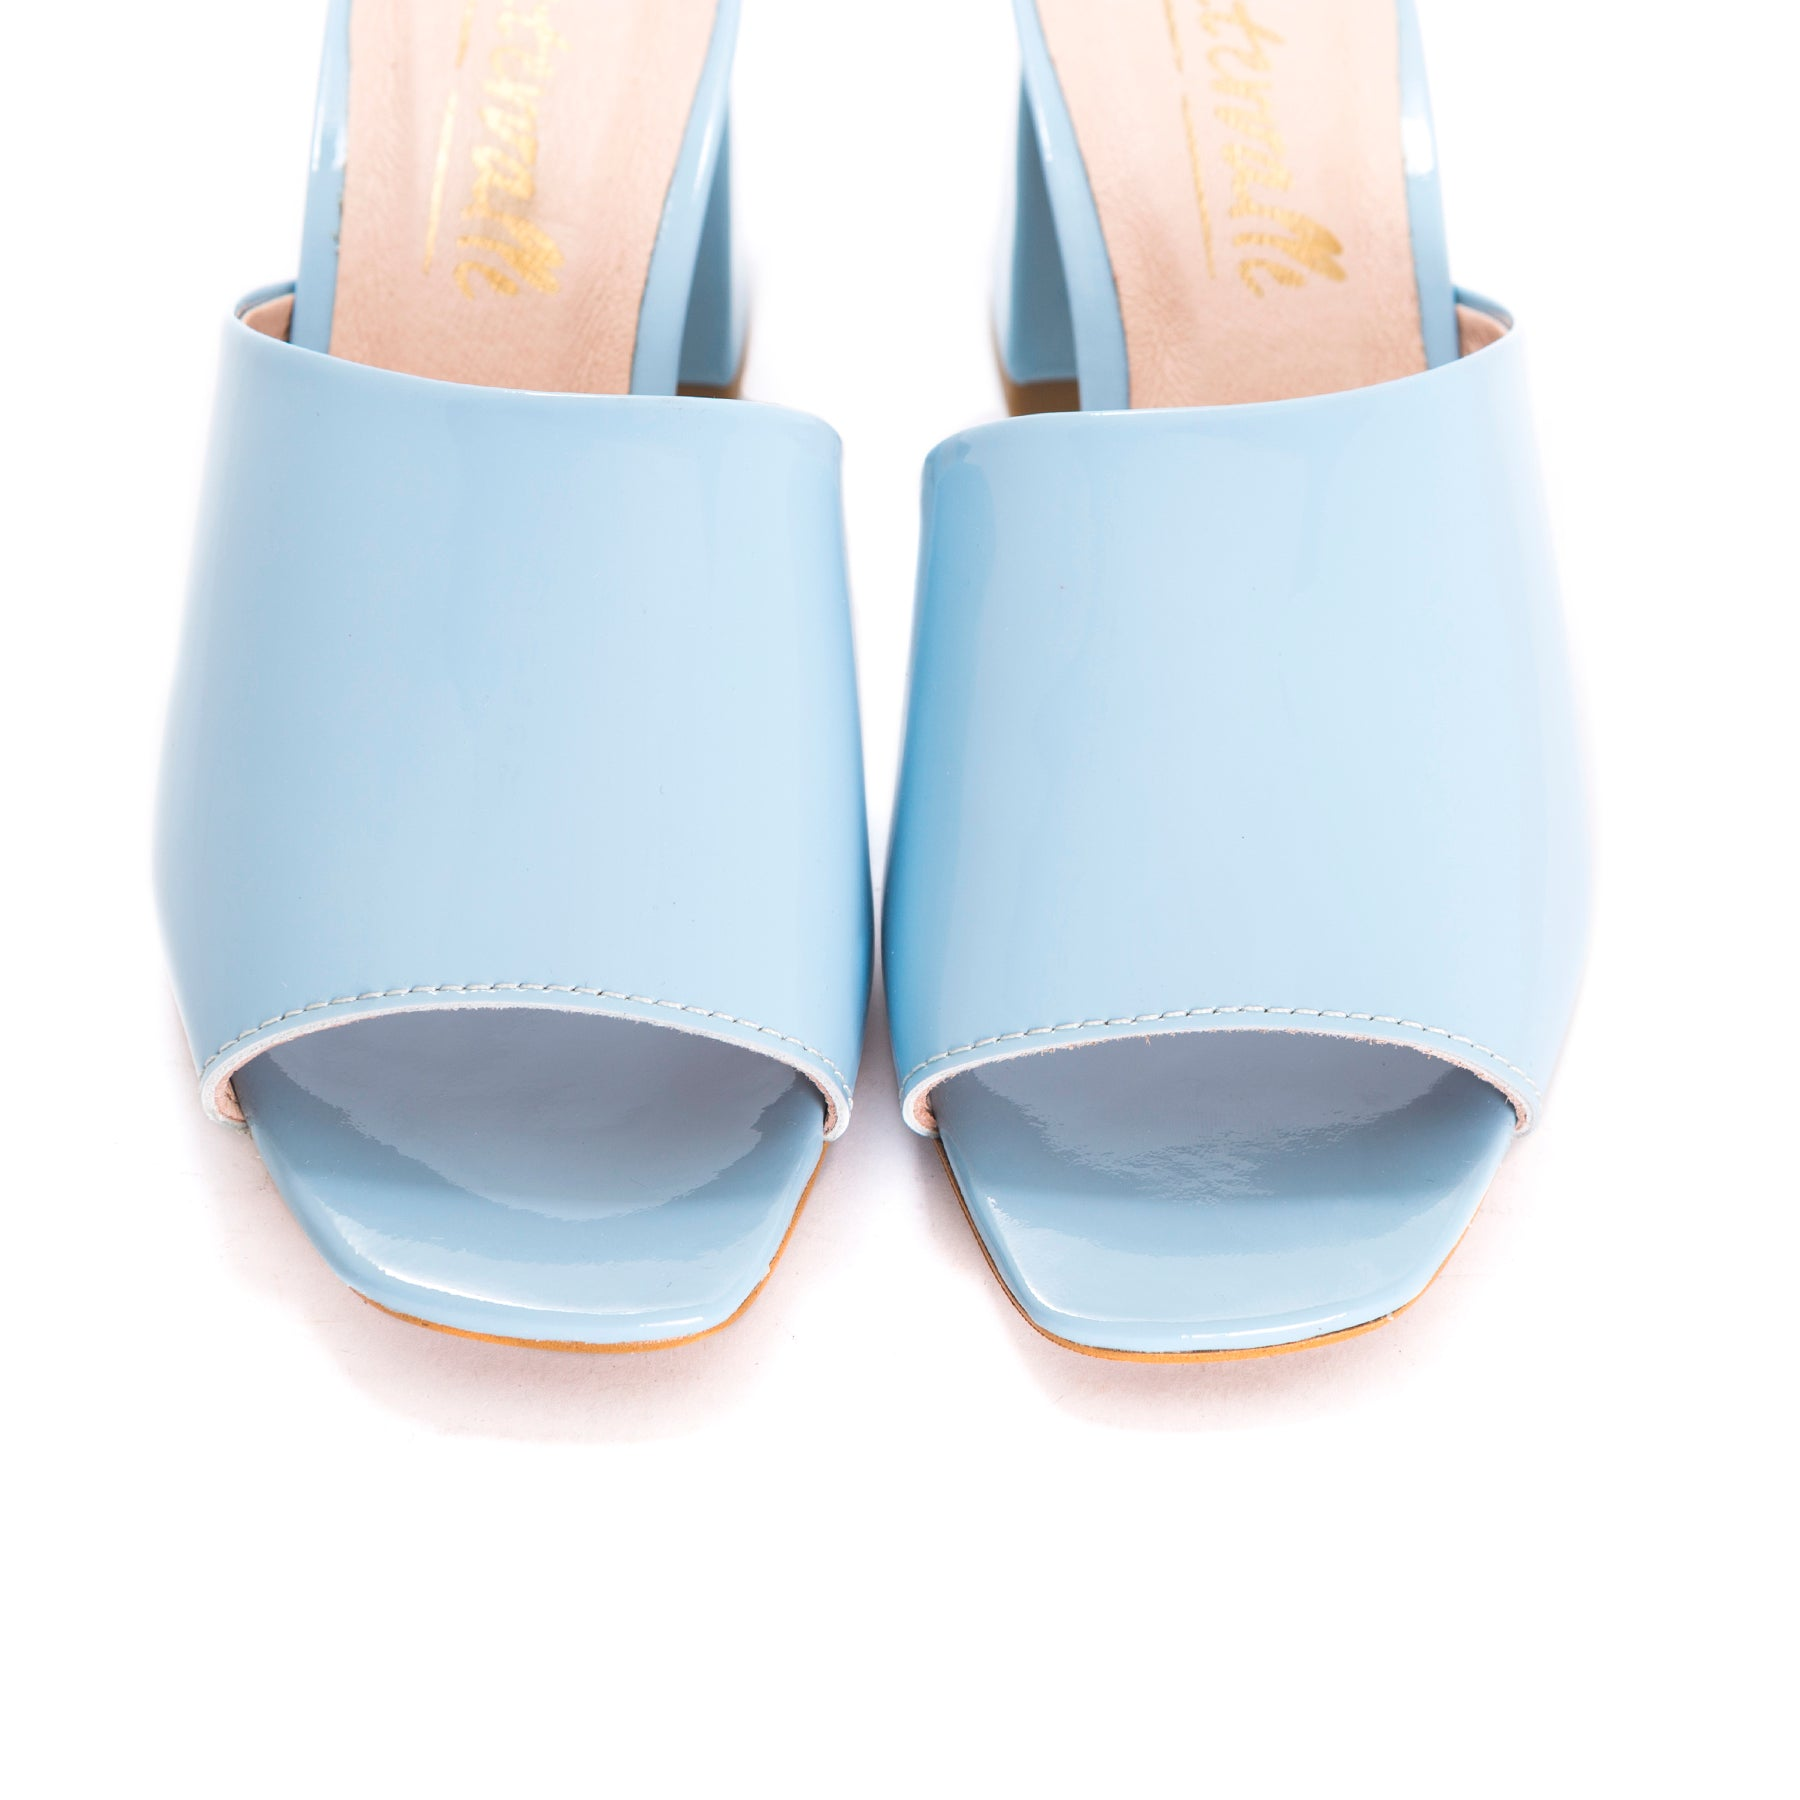 Zola Light Blue Patent Mules